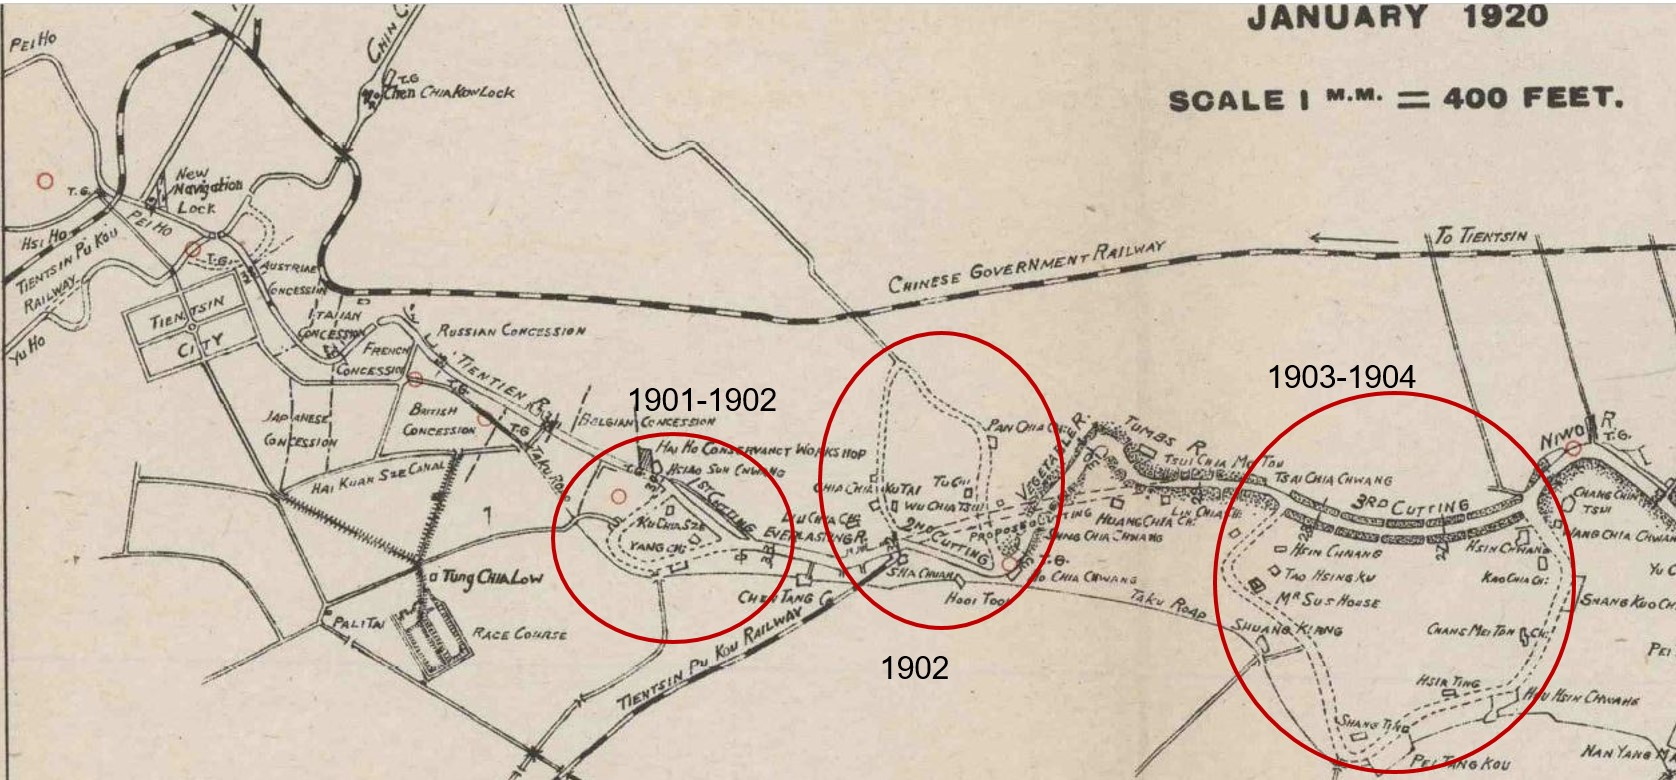 Different parts of the Hai Ho Conservancy Commission map are circled. Each circle represents a 'Cutting.' One cutting is labled 1901-1902, the next 1902, the next 1903-1904.